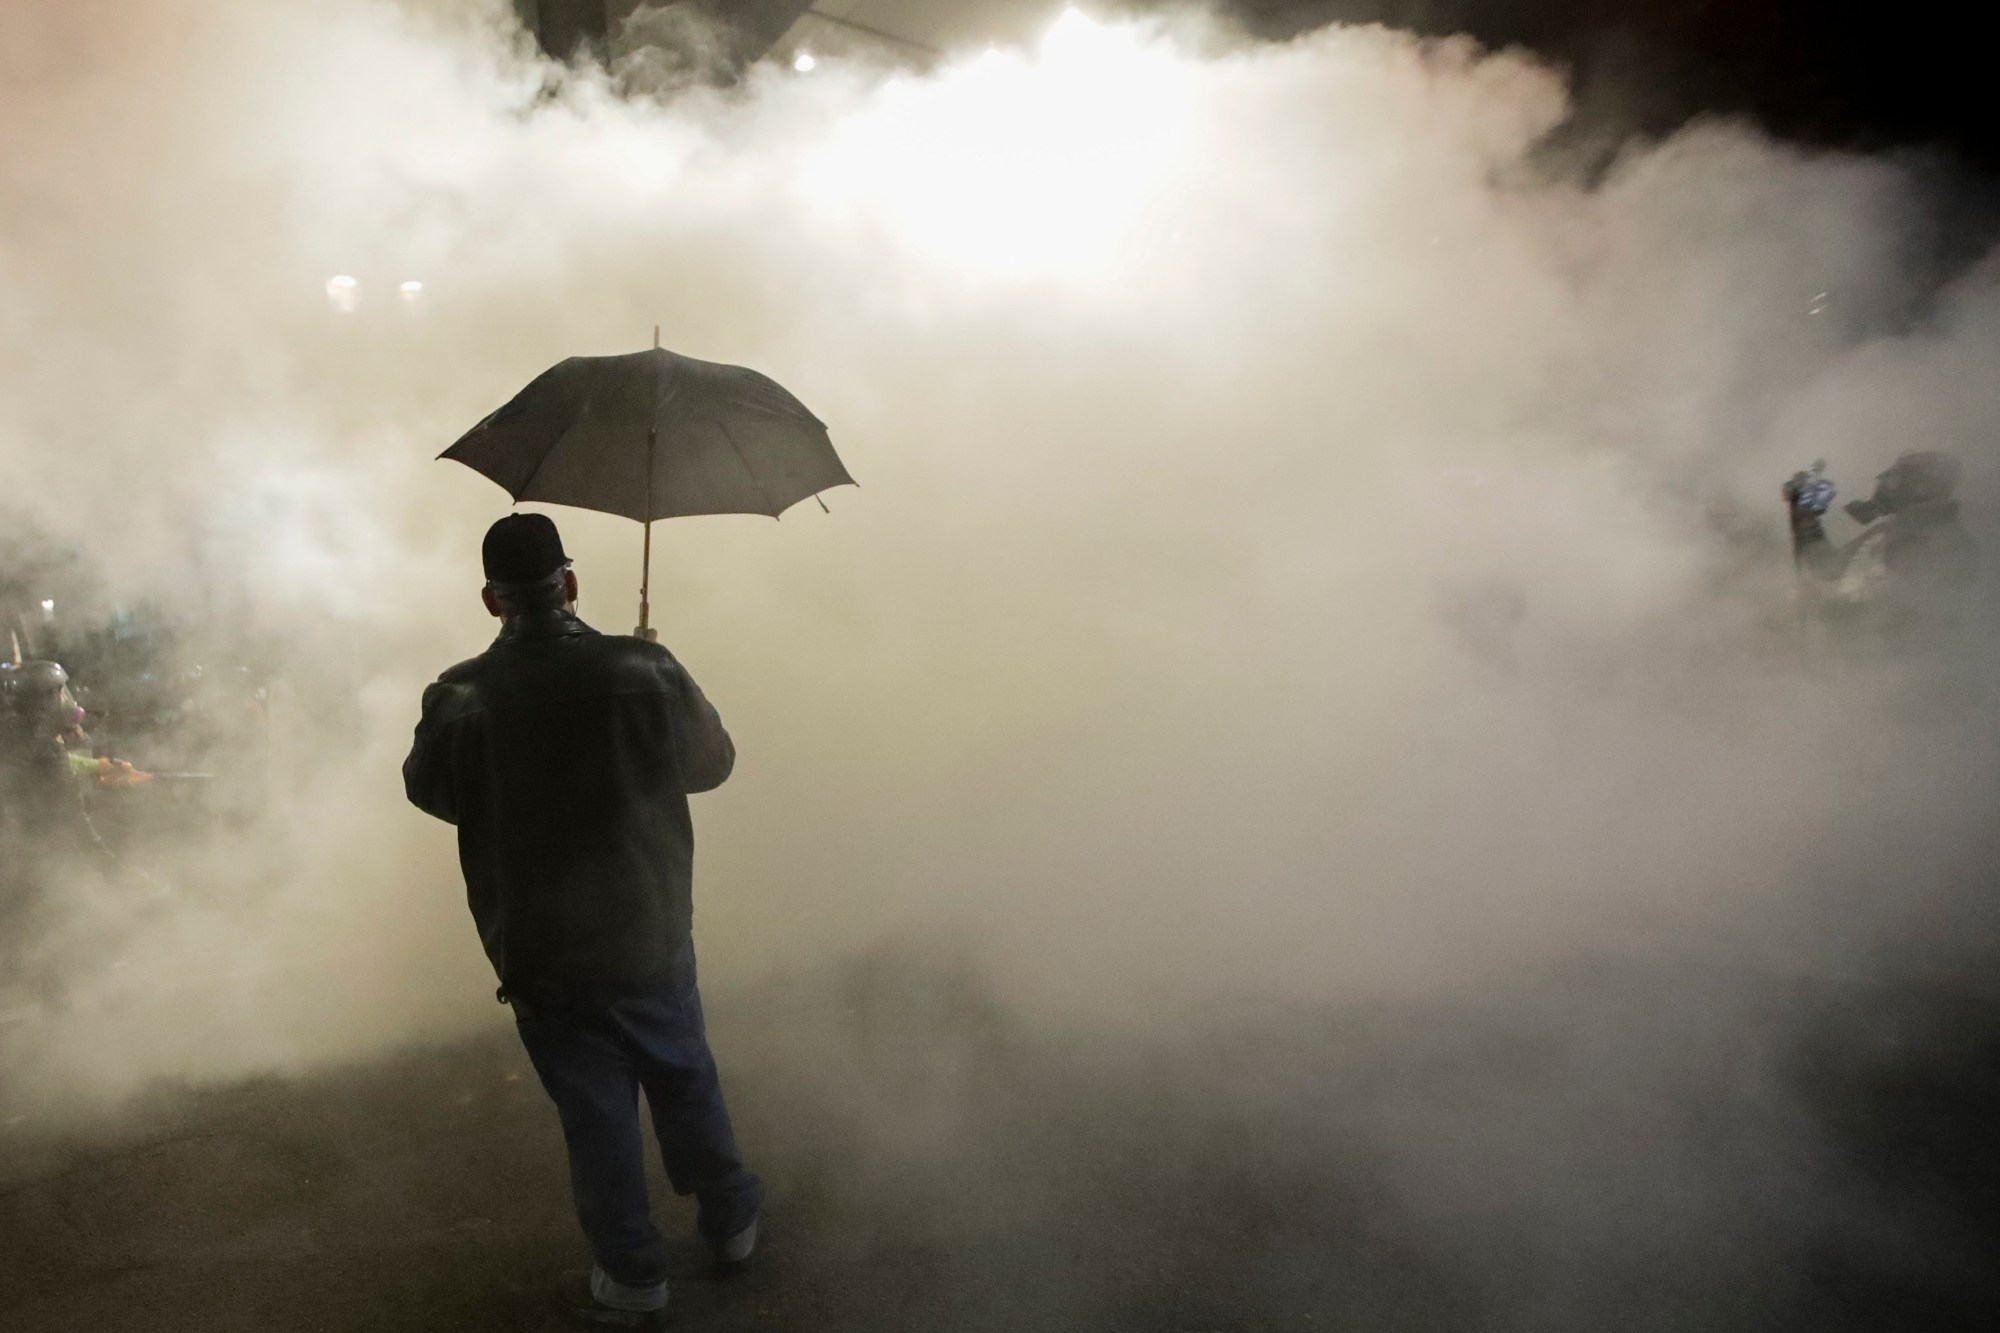 A protester carries an umbrella as federal police officers deploy tear gas during a protest at the Mark O. Hatfield U.S. Courthouse in Portland, Oregon on July 25, 2020. (Marcio Jose Sanchez/Associated Press)